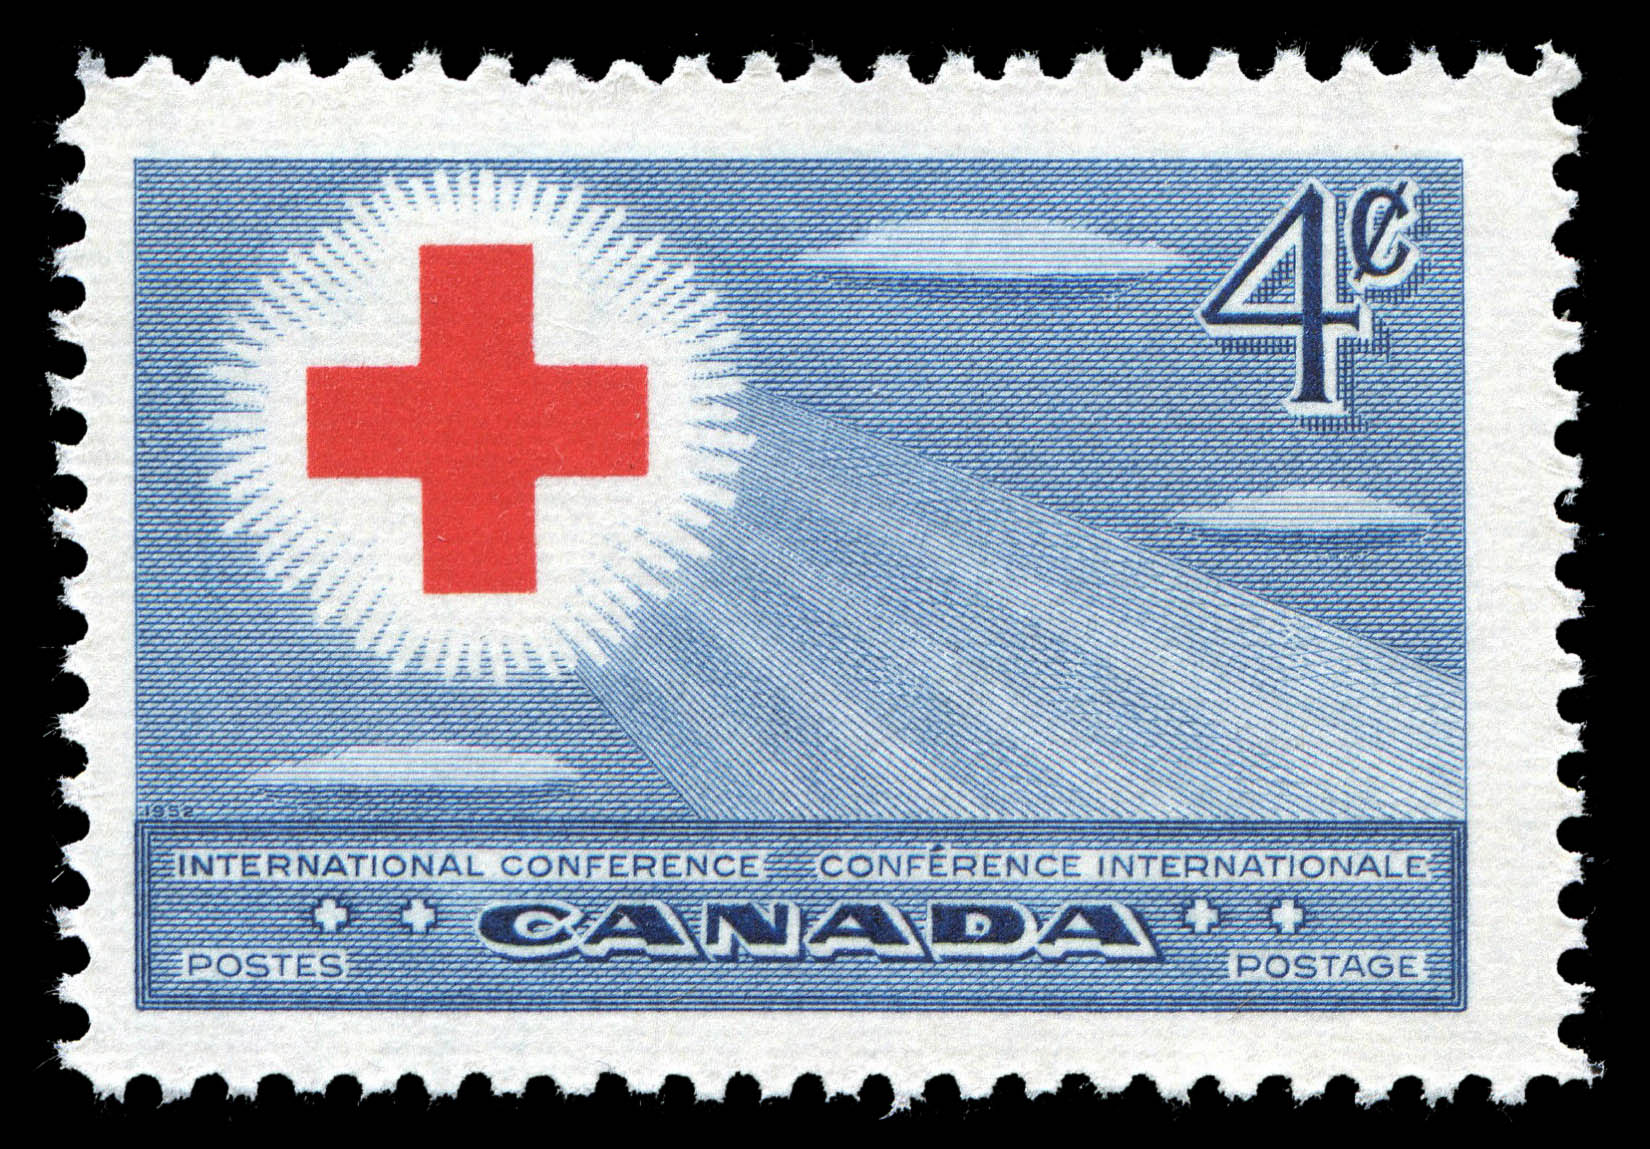 International Red Cross Conference Canada Postage Stamp